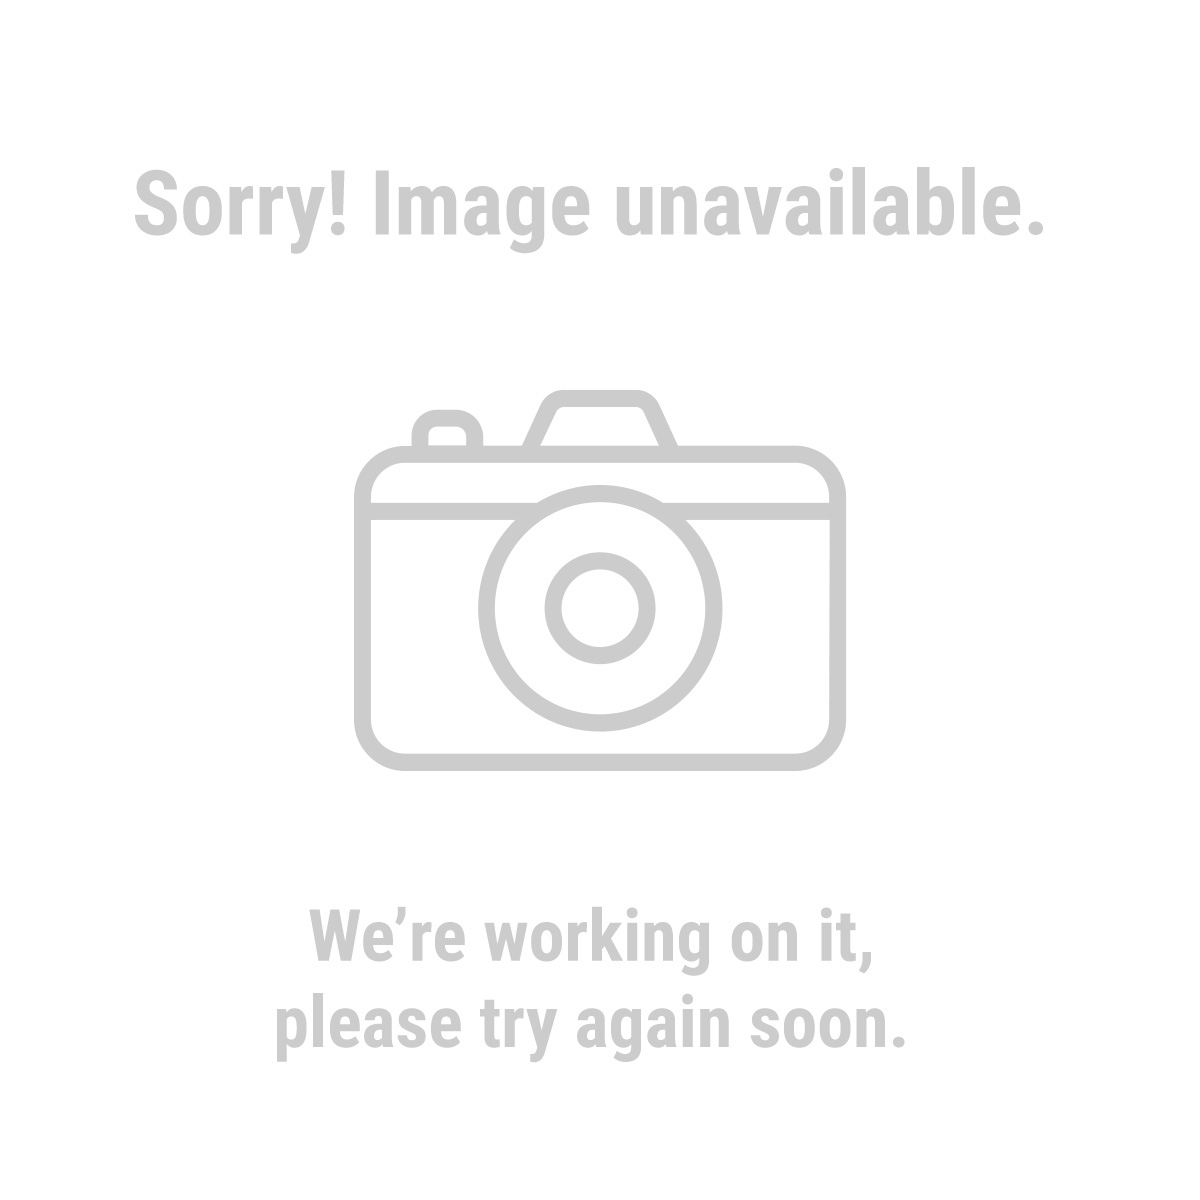 Drill Master 528 115 Piece High Speed Drill Bit Set with Index